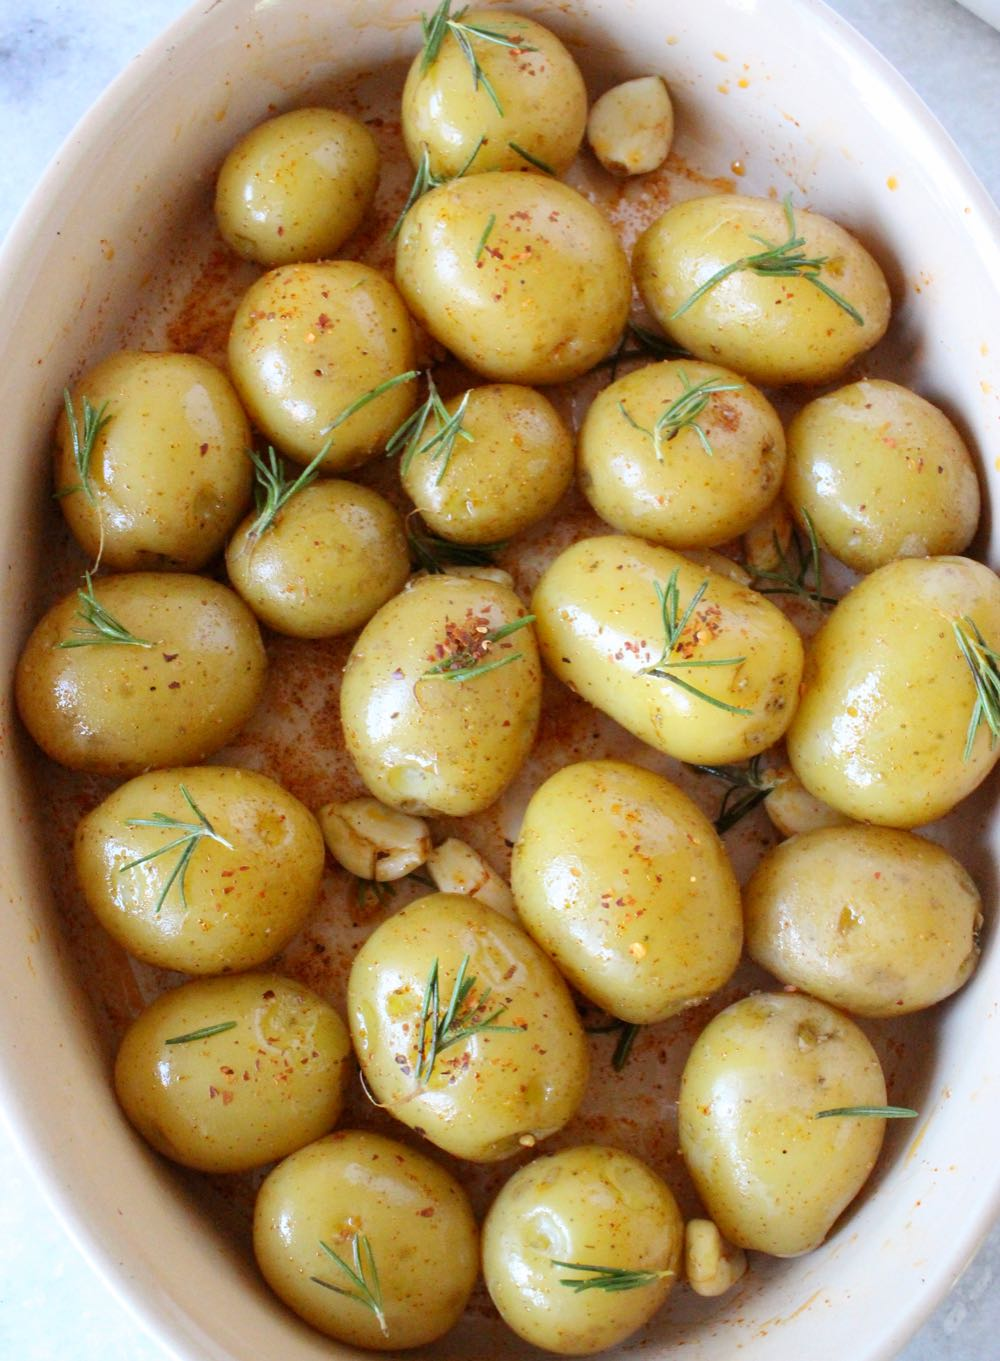 Seasoned whole potatoes for roasting with garlic and rosemary.